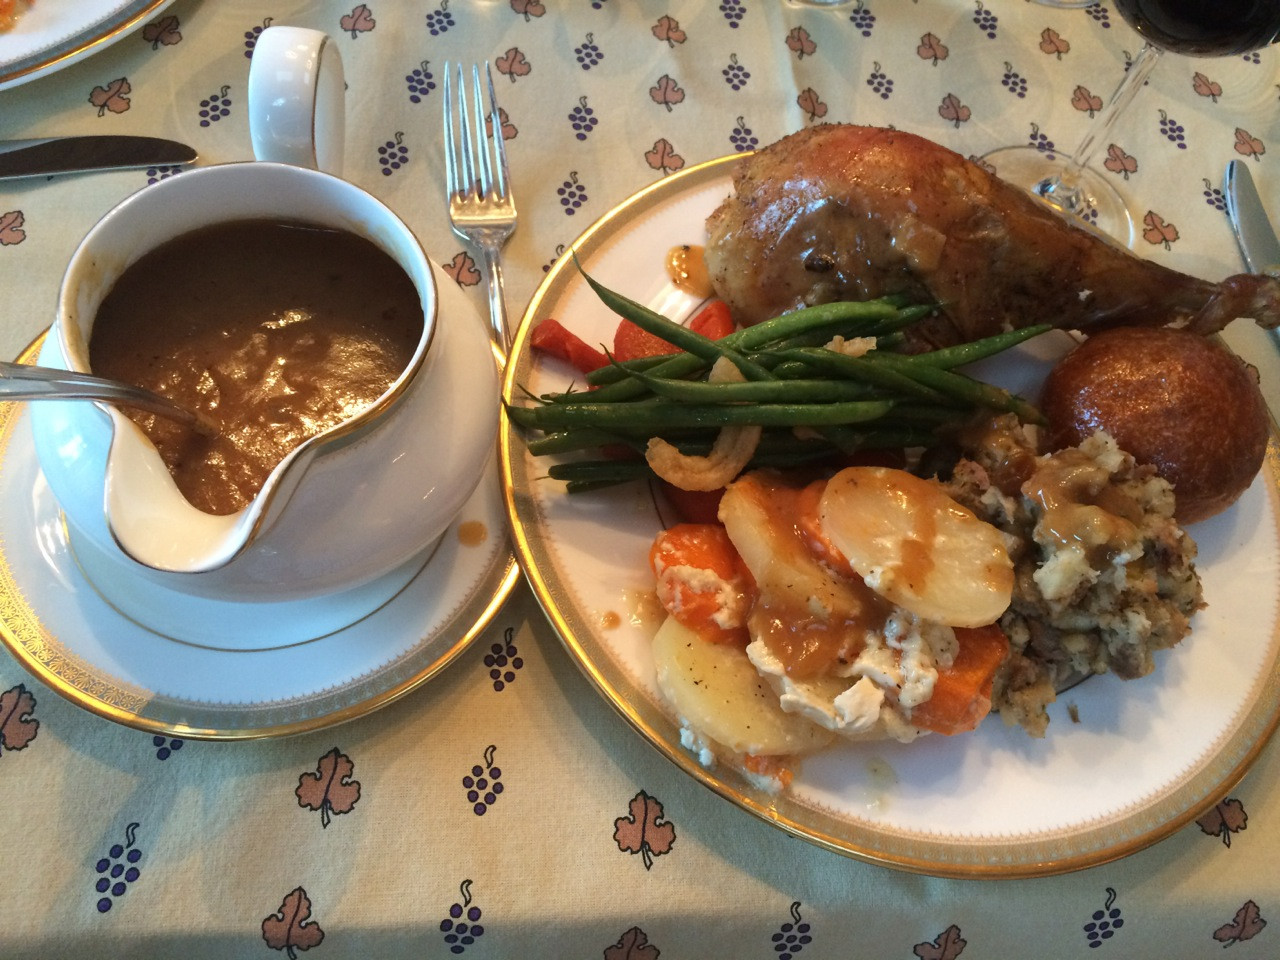 Ina Garten Thanksgiving Turkey  Ina Garten s Homemade Make Ahead Gravy Everyday Cooking